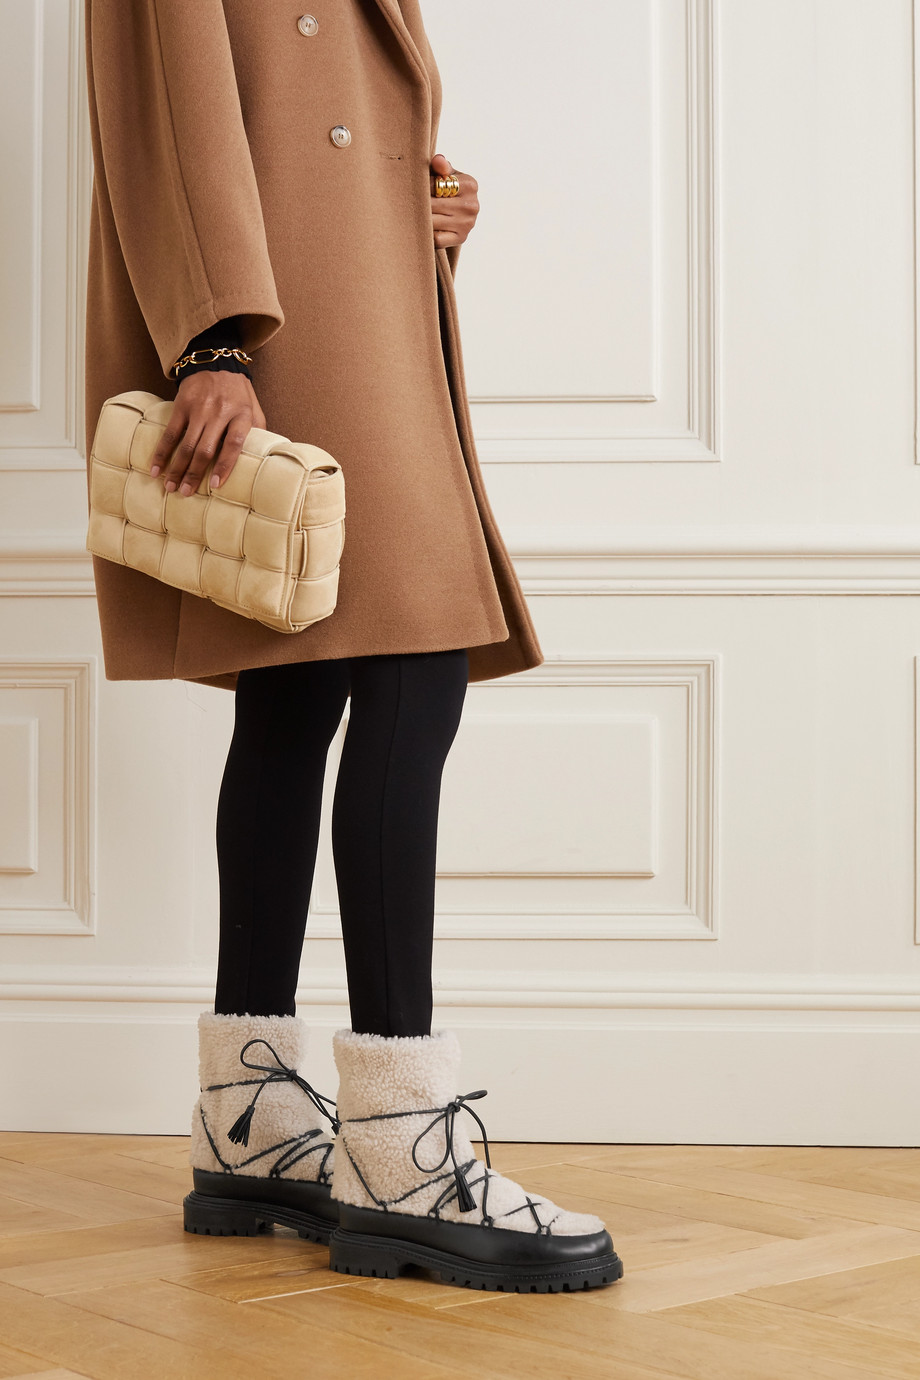 Aquazzura Very Gstaad shearling and leather ankle boots